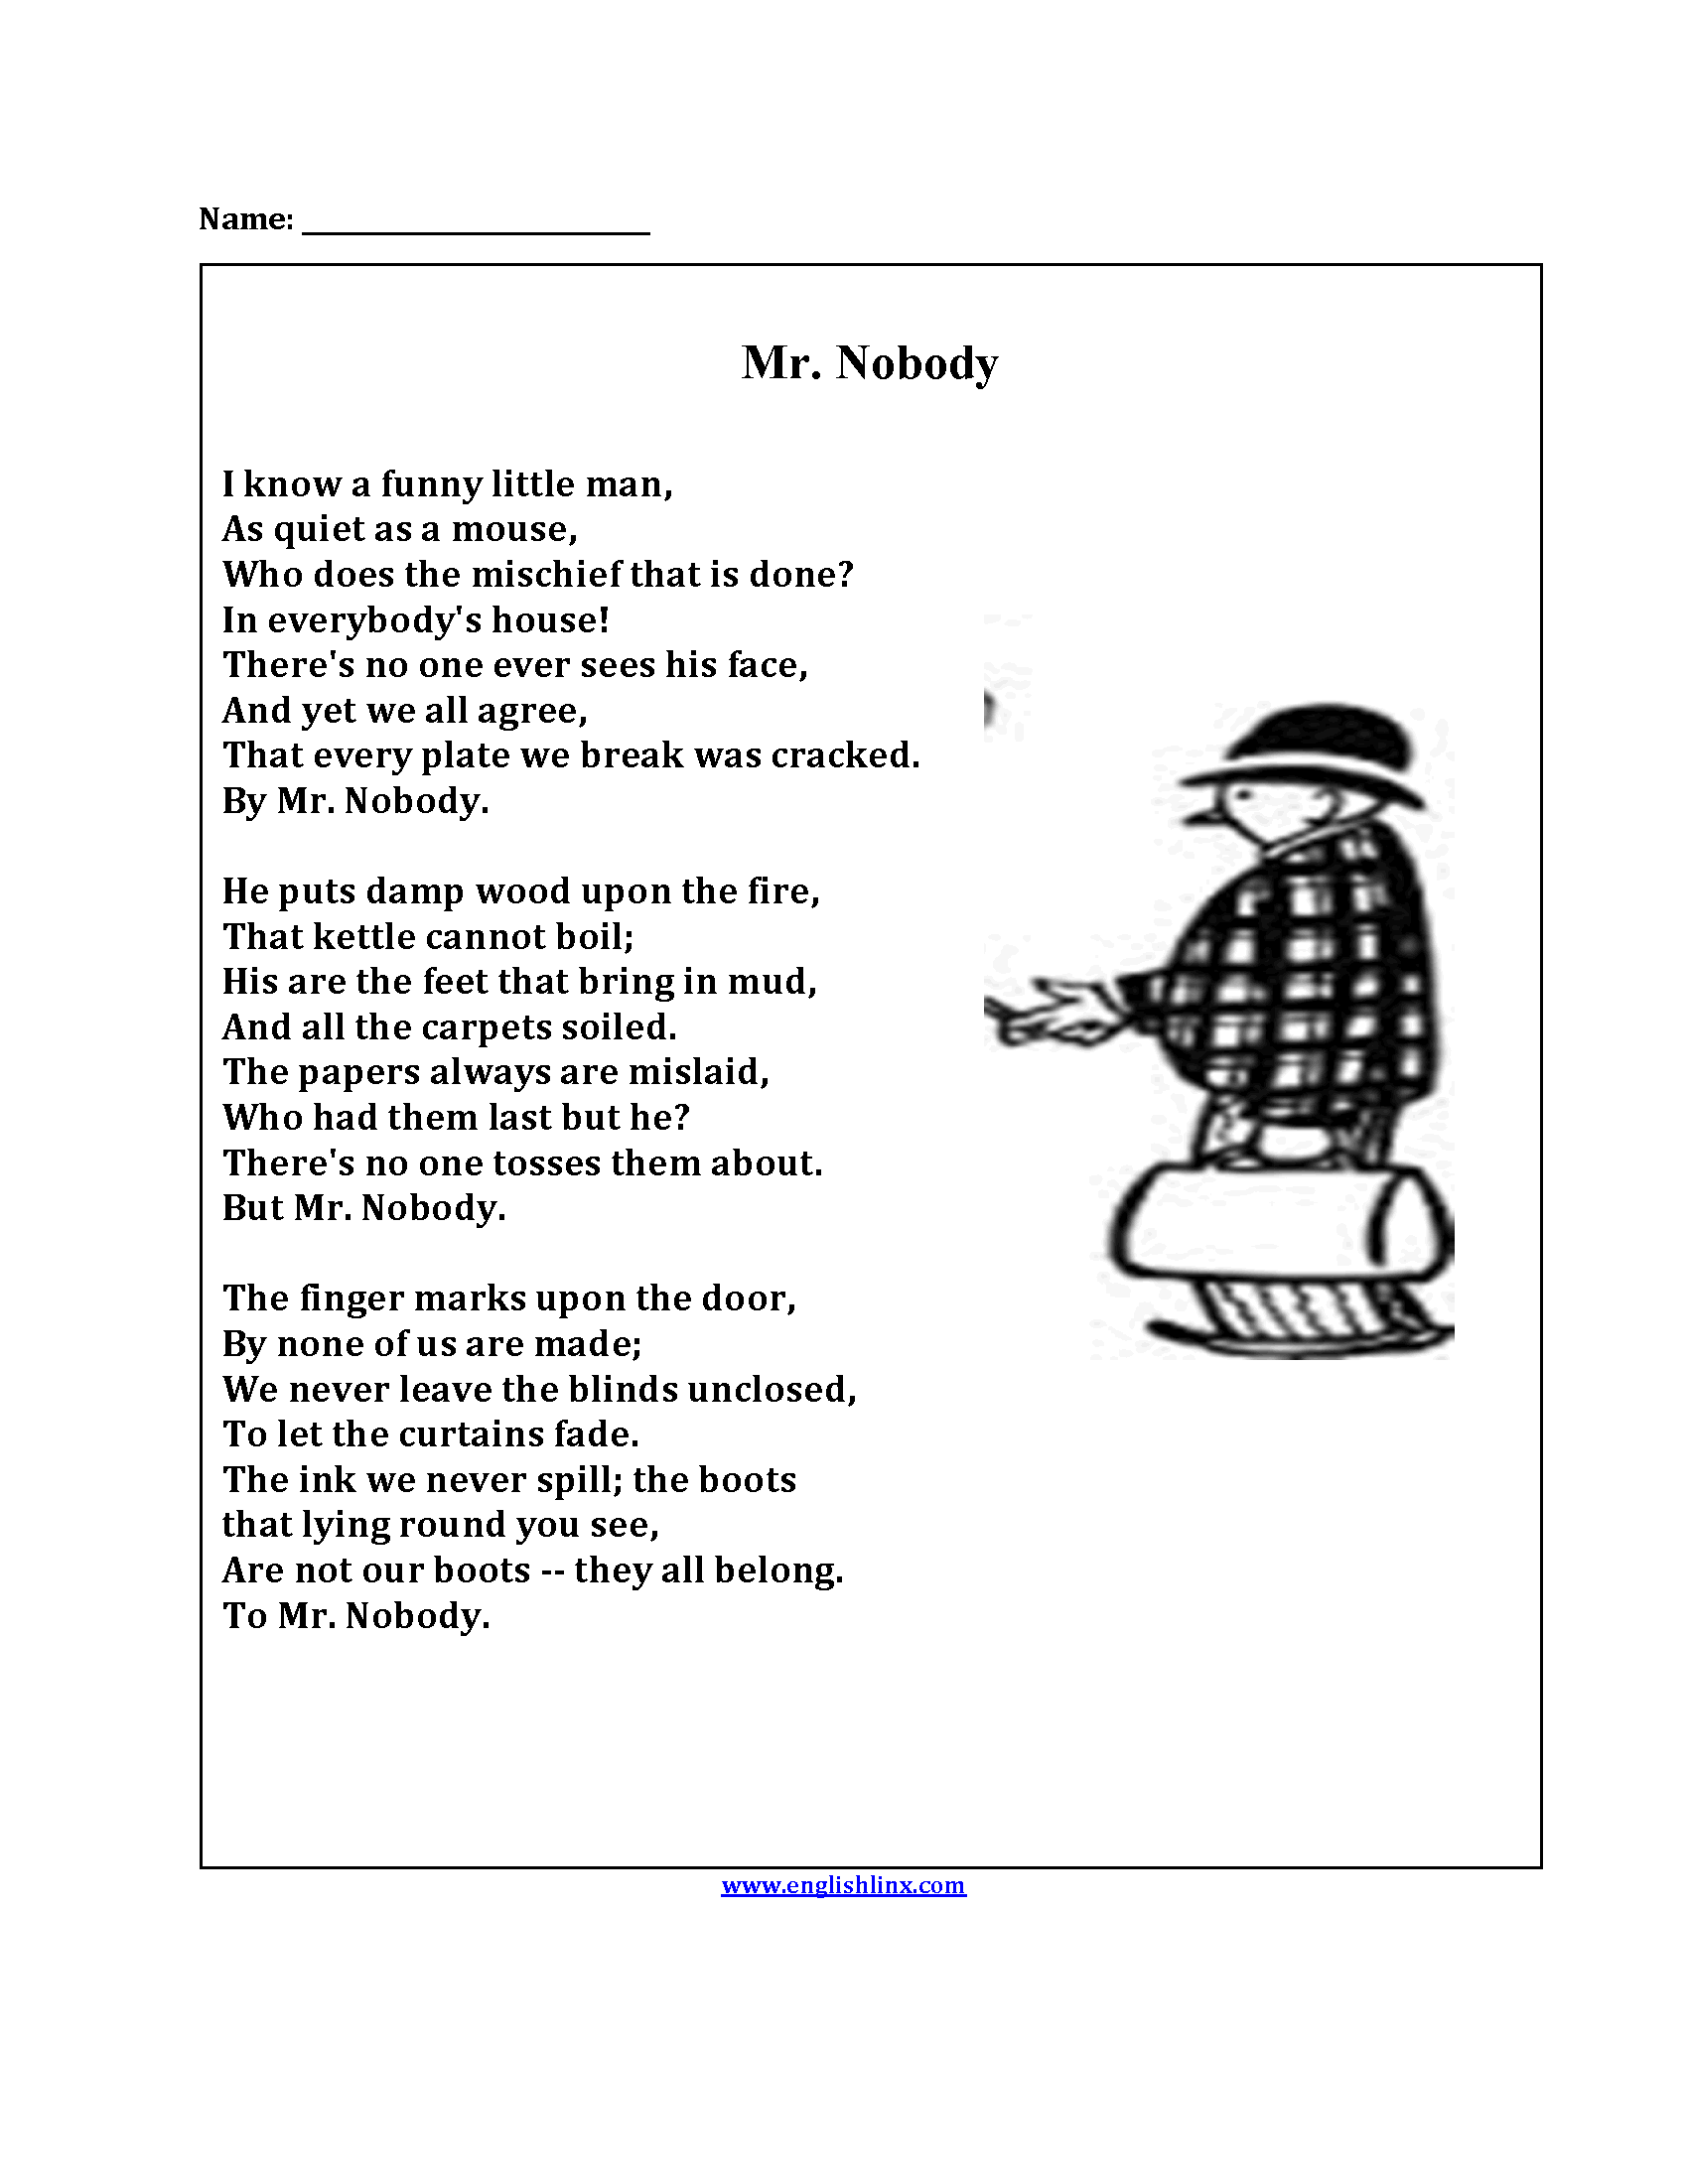 mr nobody poetry worksheets educate comprehension worksheets worksheets poetry. Black Bedroom Furniture Sets. Home Design Ideas